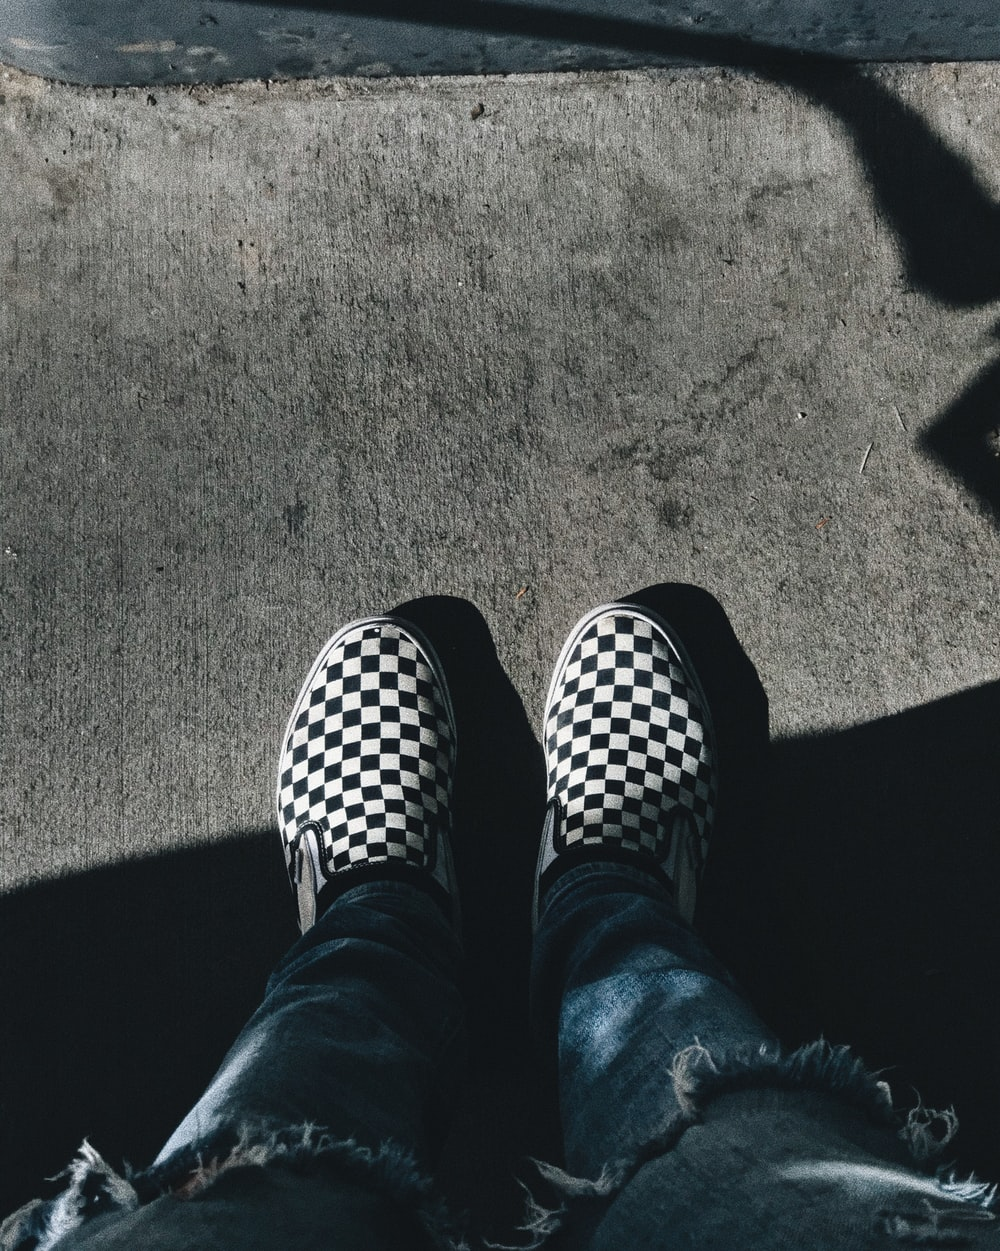 person standing while showing pair of black-and-white checkered shoes